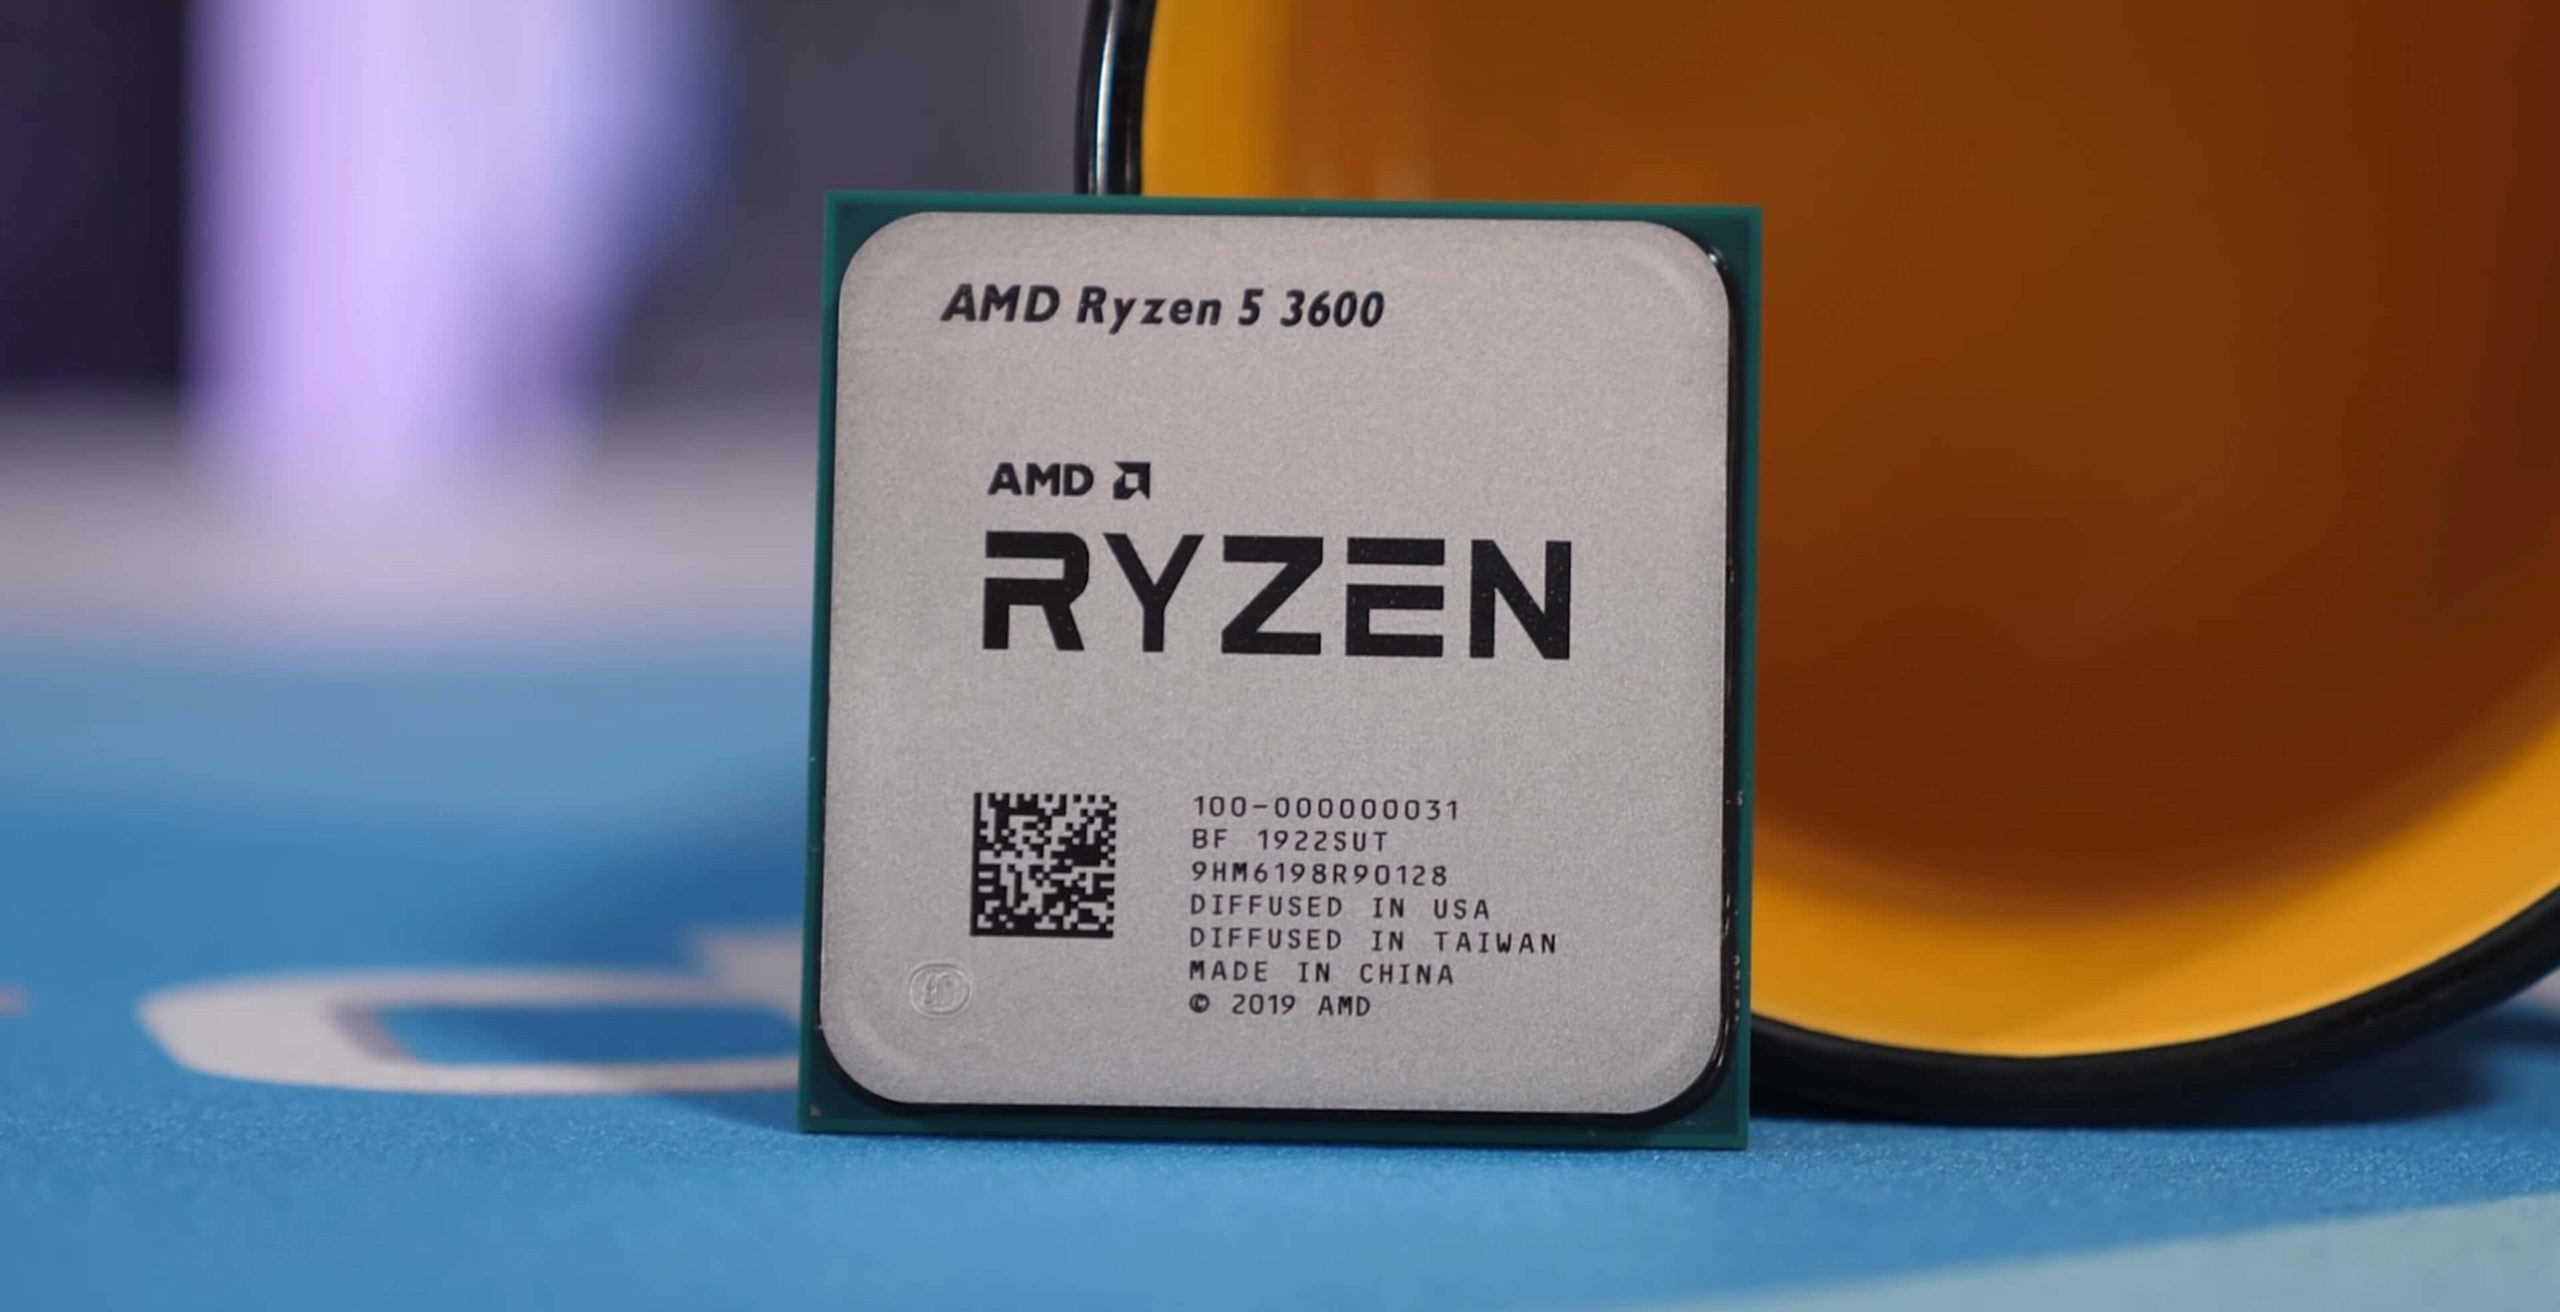 AMD Ryzen 5 3600 a great choice